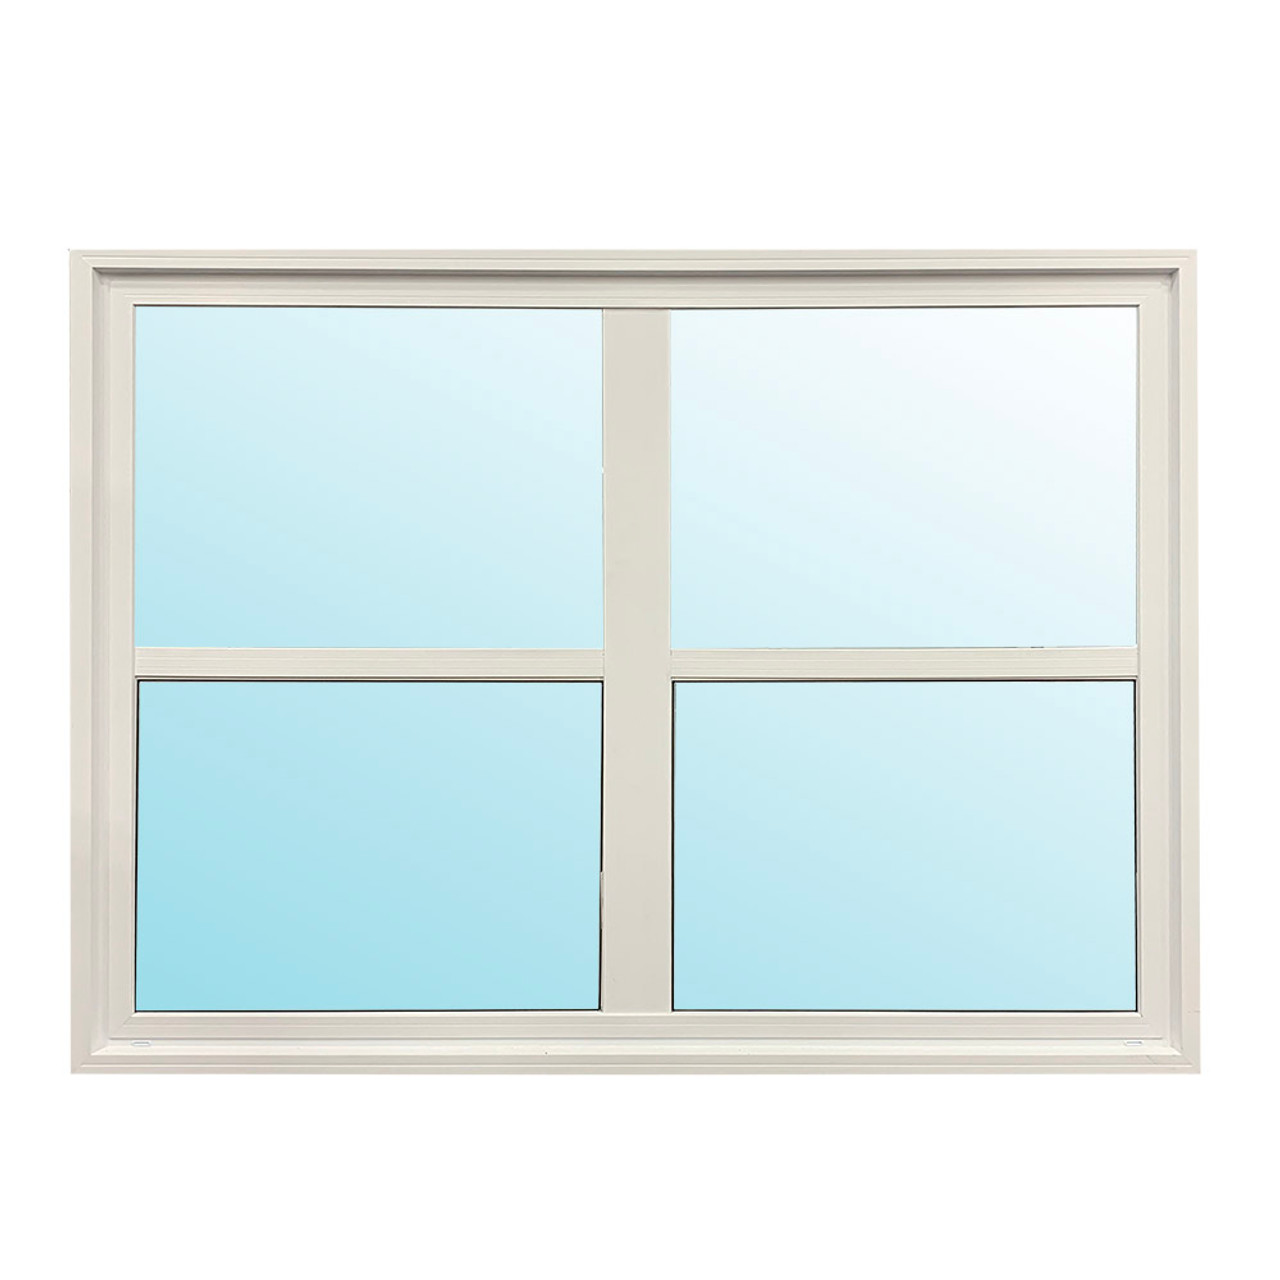 "Castlegard | 60"" x 54"" Single Hung Window 